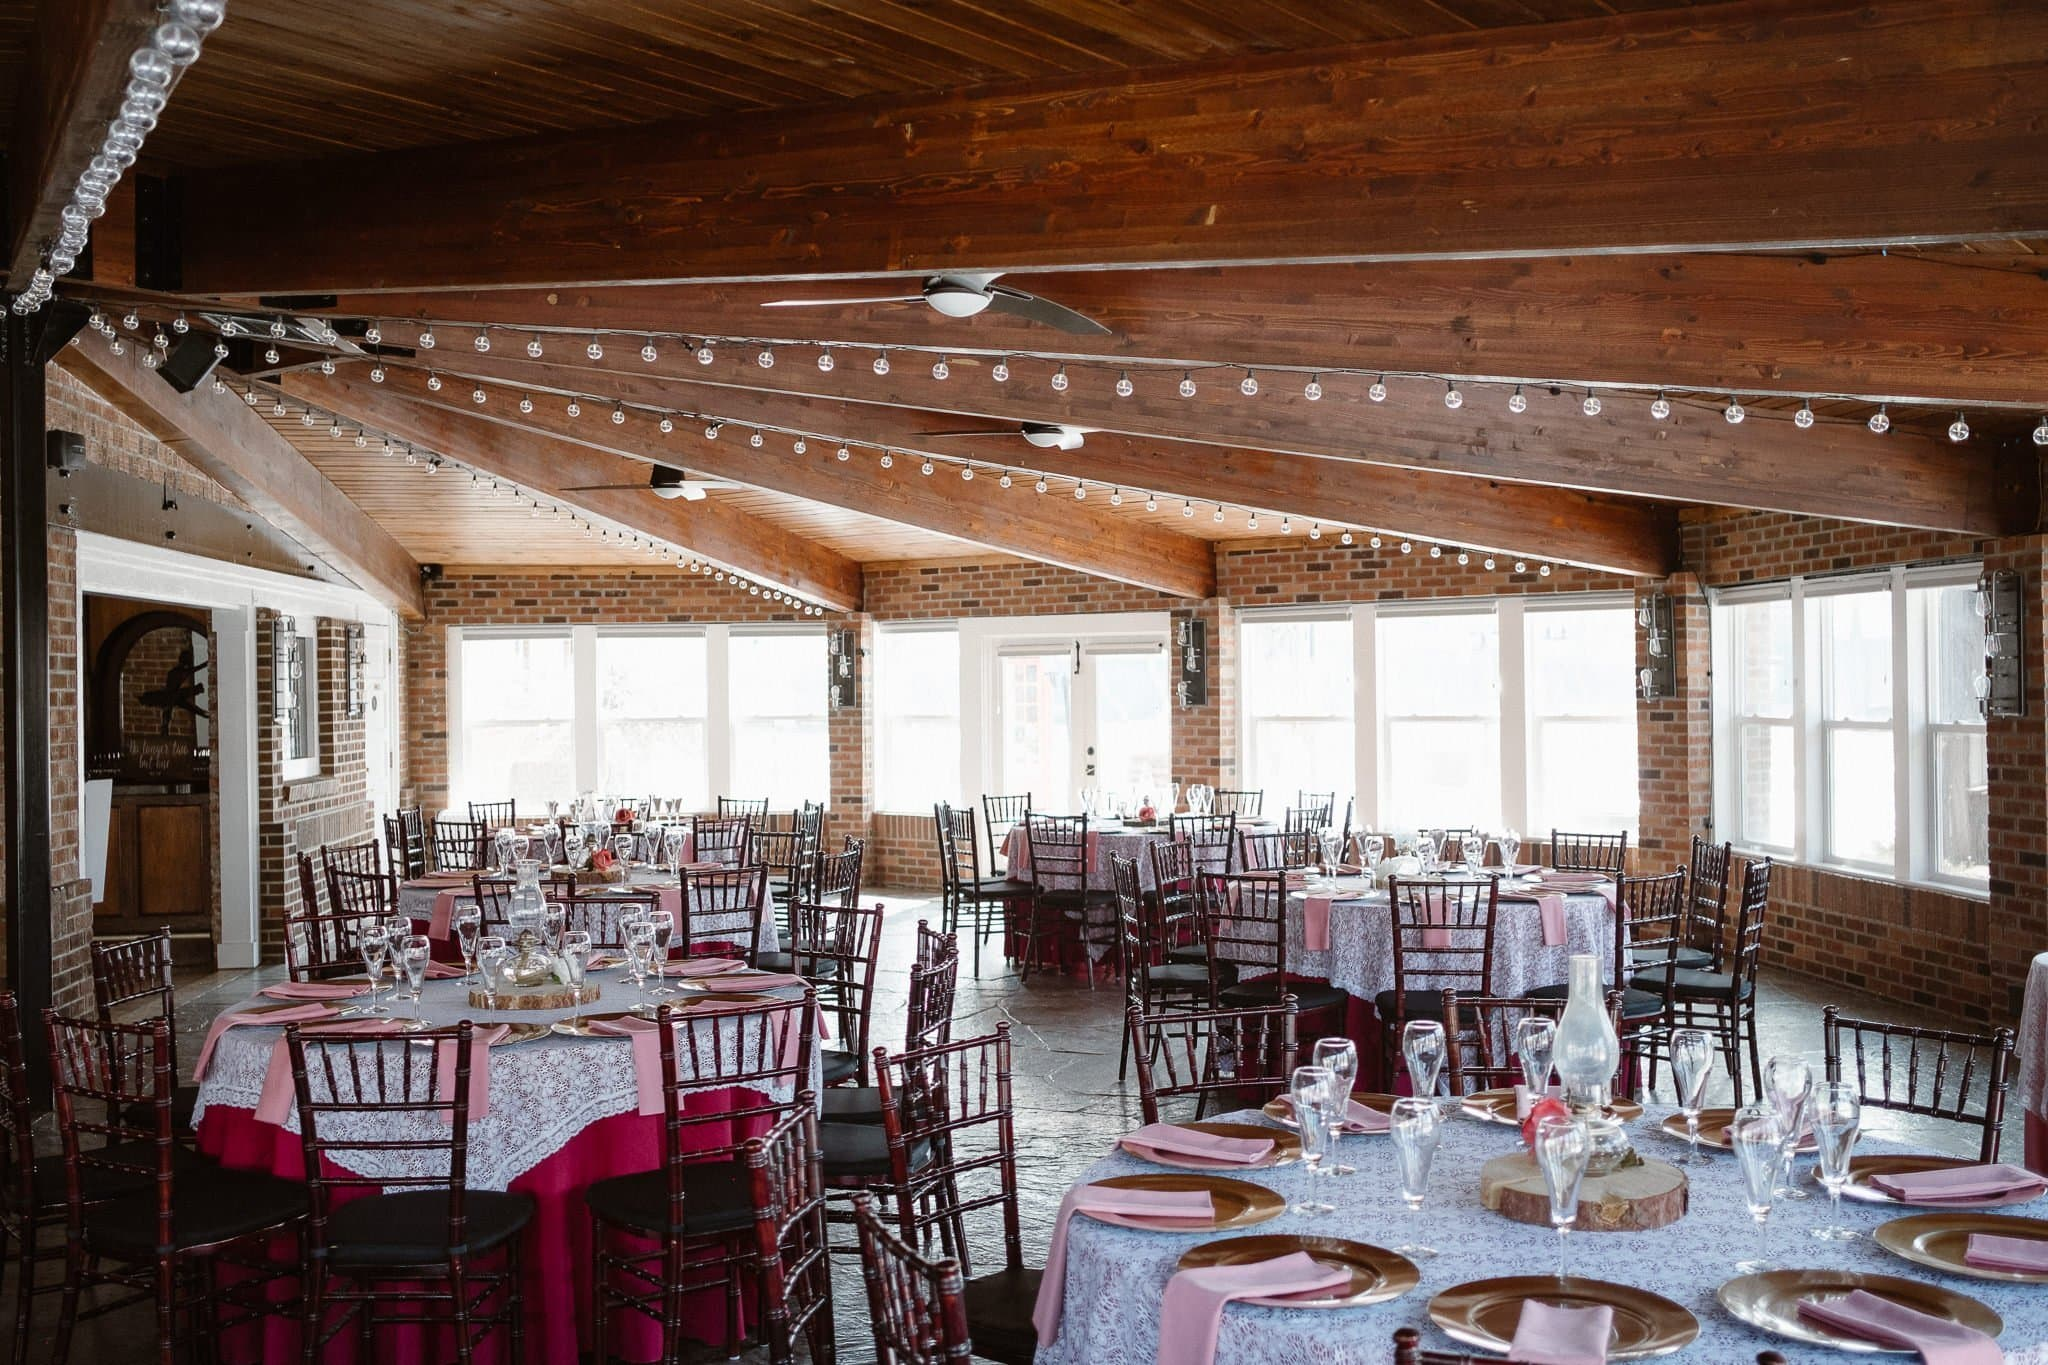 Lionsgate Event Center in Lafayette, Colorado wedding venue